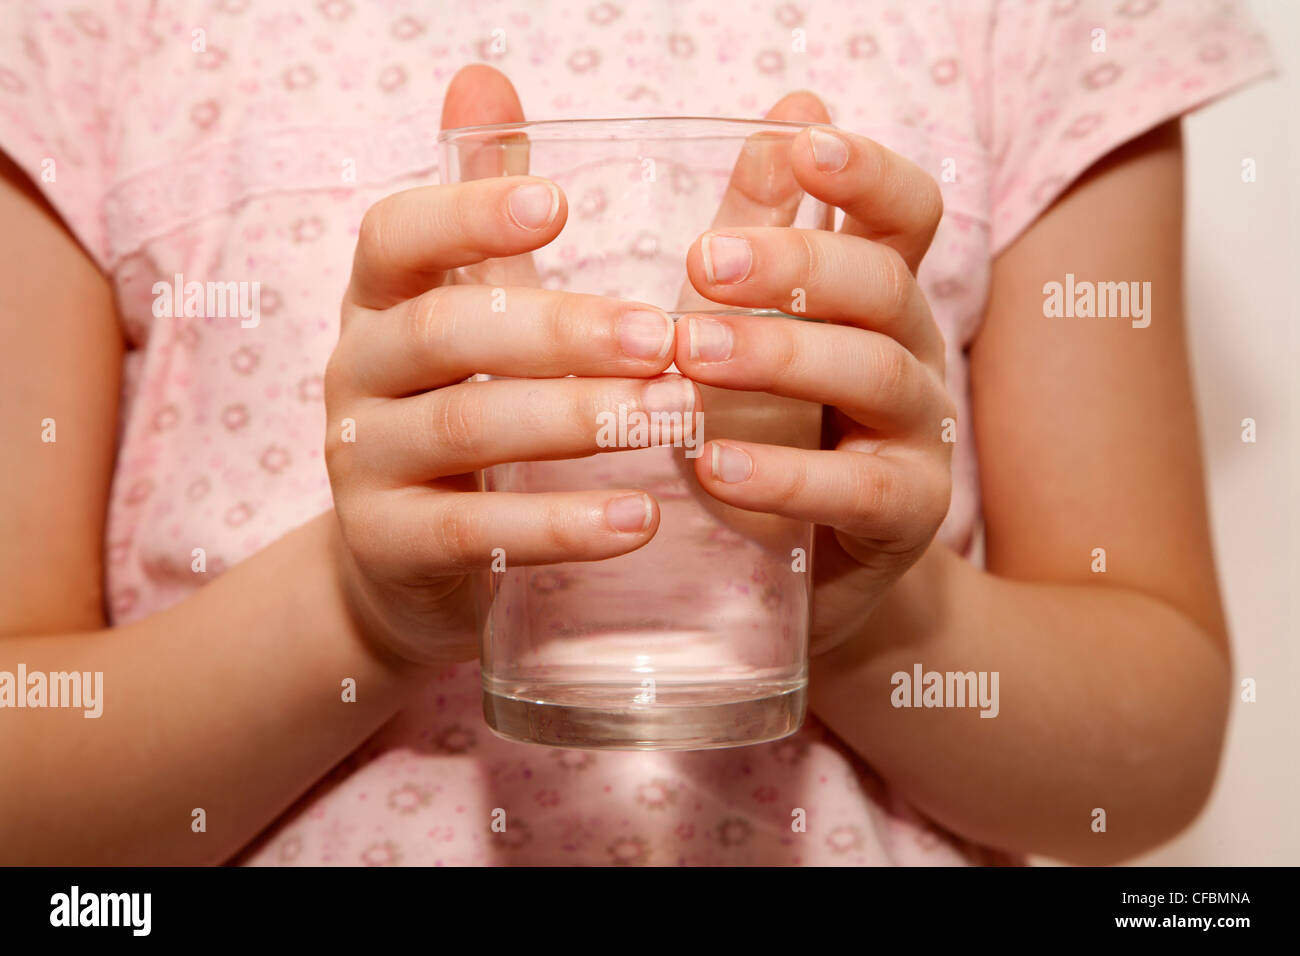 hands of little girl and glass of water - Stock Image